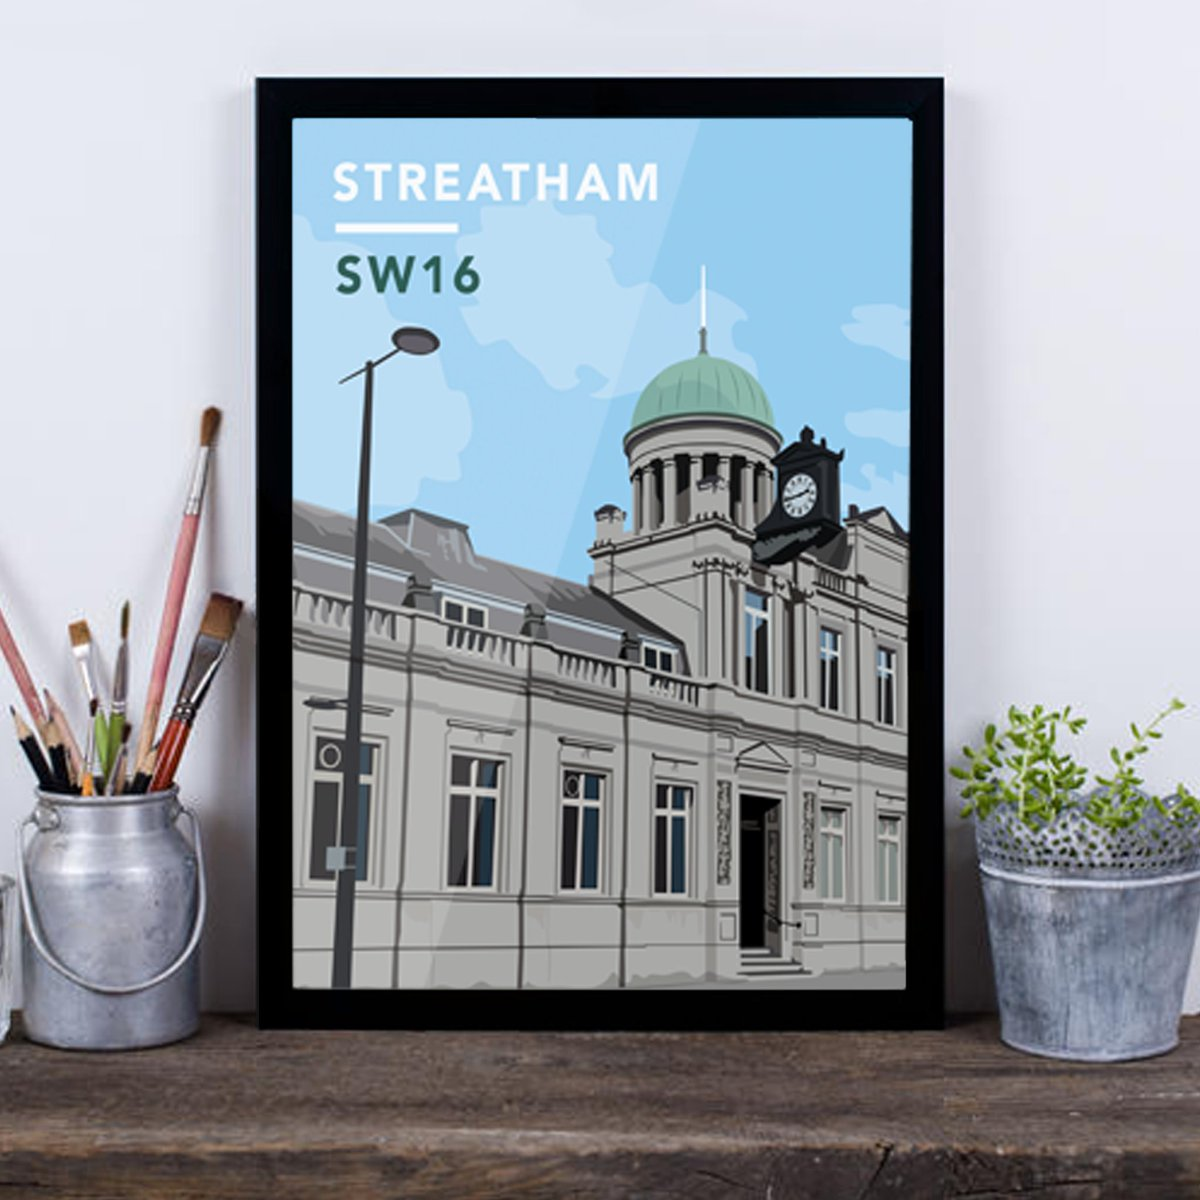 Check out this stunning #Streatham print!https://shop.southlondonclub.co.uk/collections/streatham-prints/products/streatham-library-sw16-print…pic.twitter.com/r1C9XfCdIC